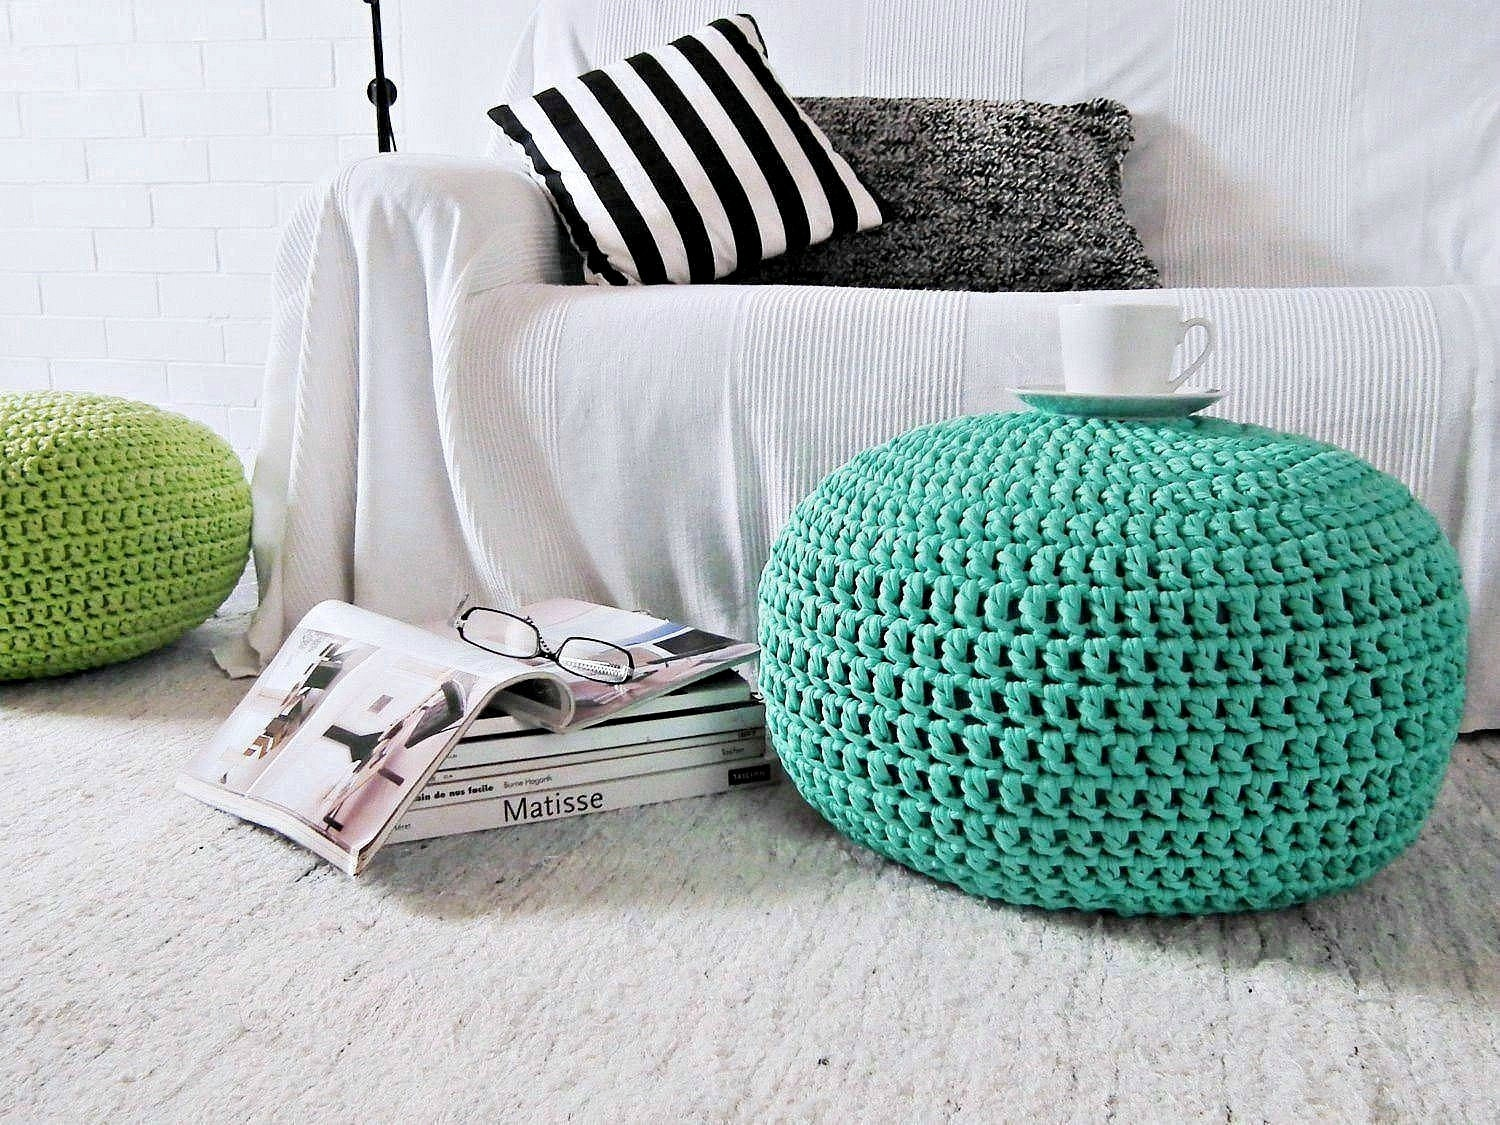 How to make bean bag chairs - Aqua Turquoise Pouf Ottoman Tiffany Nursery Decor Foot Stool Round Pouf Kids Furniture Crochet Pouf Floor Cushion Bean Bag Chair Knit Pouf